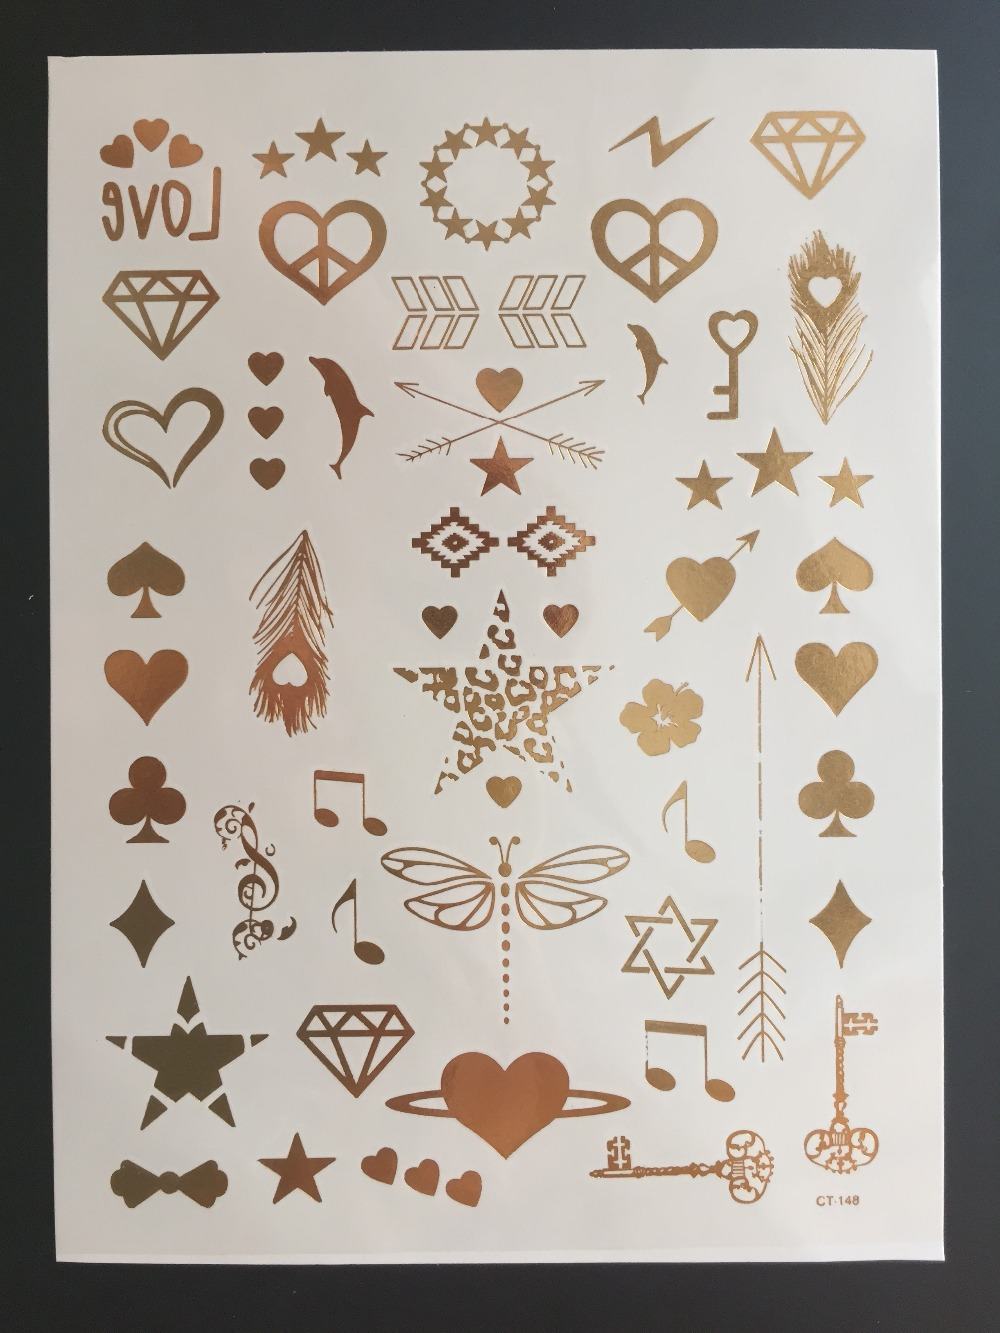 Disposable Transfer Temporary Tattoos many hearh style Laser Transfer Tattoos Papers Color Laser Copier Art Decal(China (Mainland))